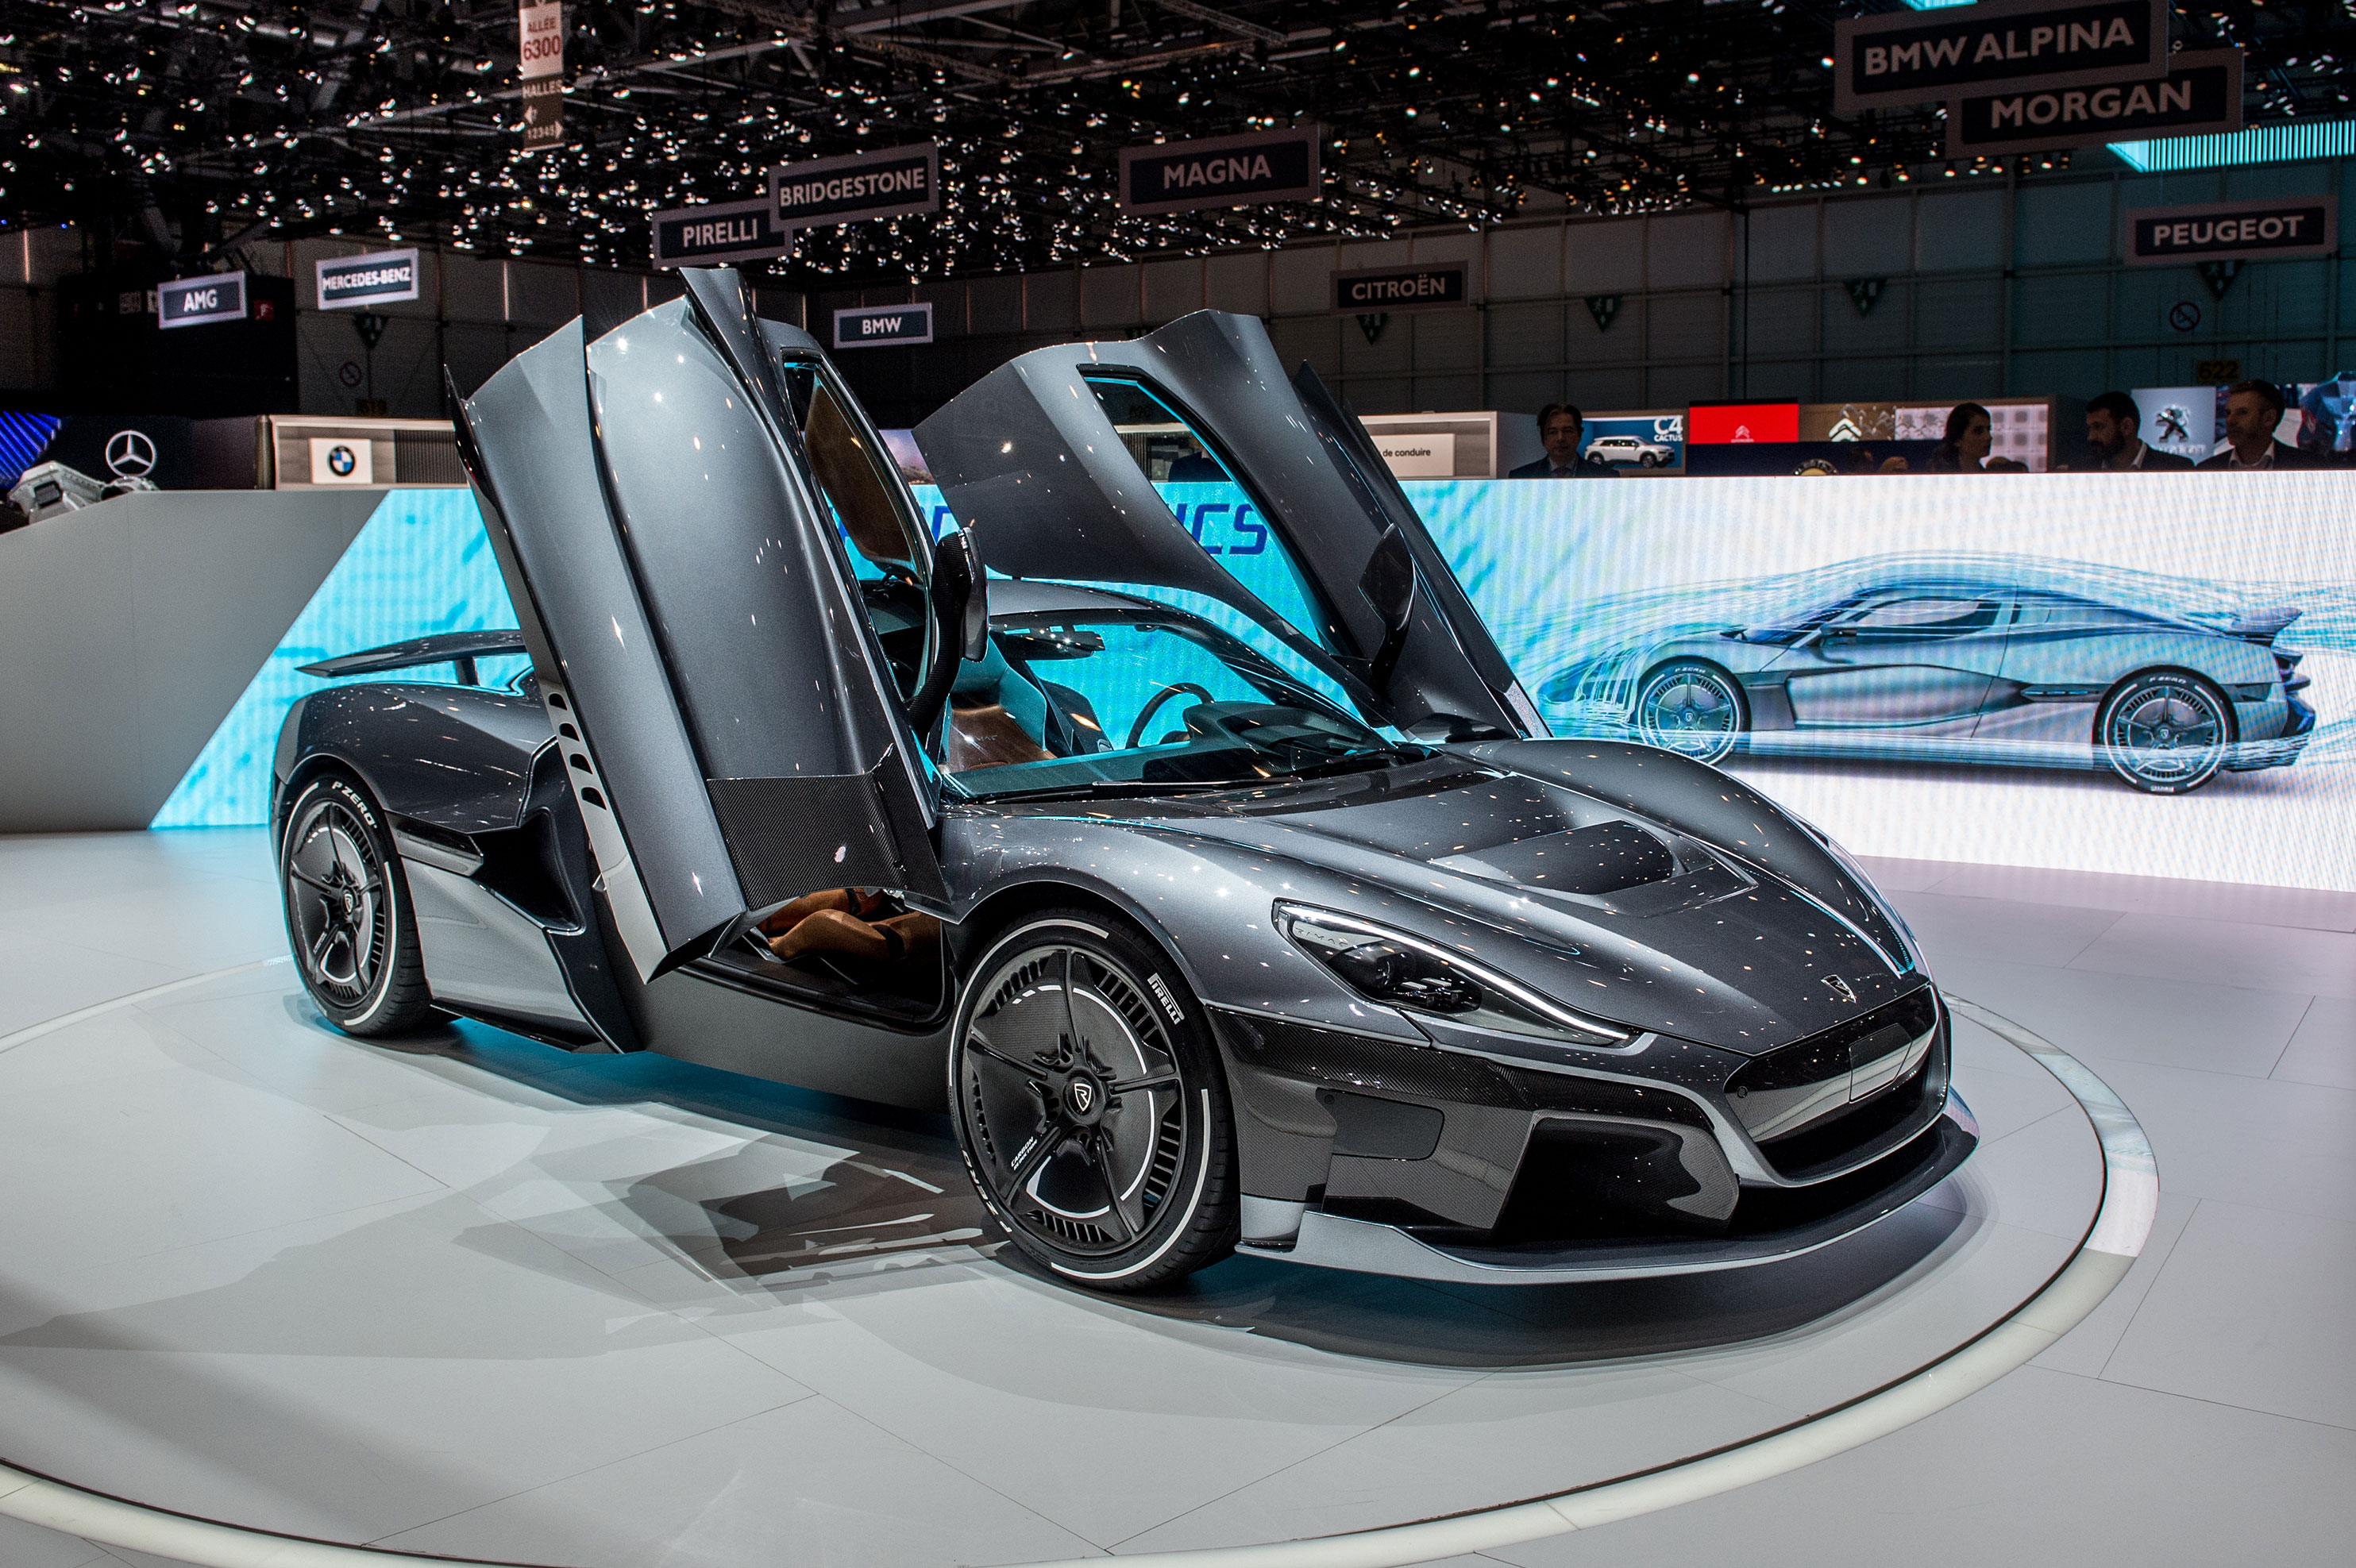 Porsche just took a 10% stake in electric hypercar maker Rimac